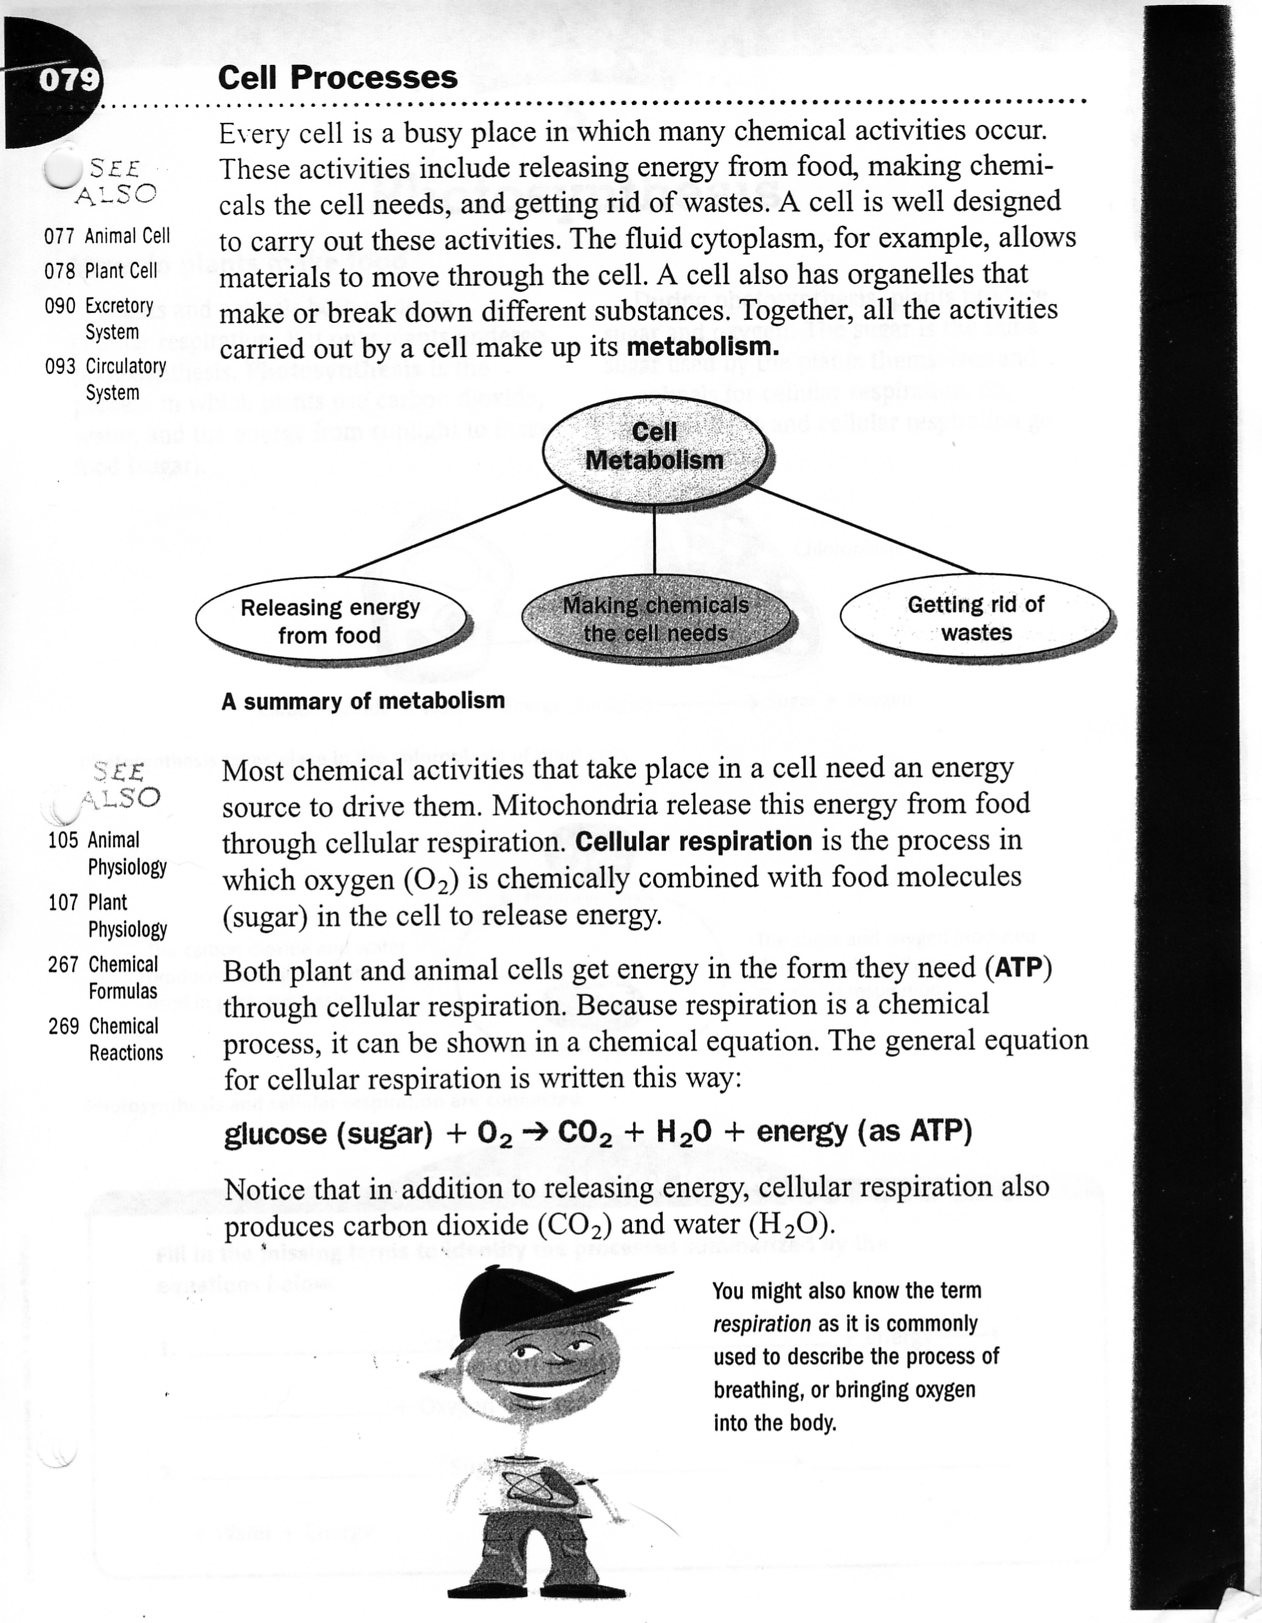 Cell Transport Worksheet Biology Answers Homeostasis and Cell Transport Worksheet Answers